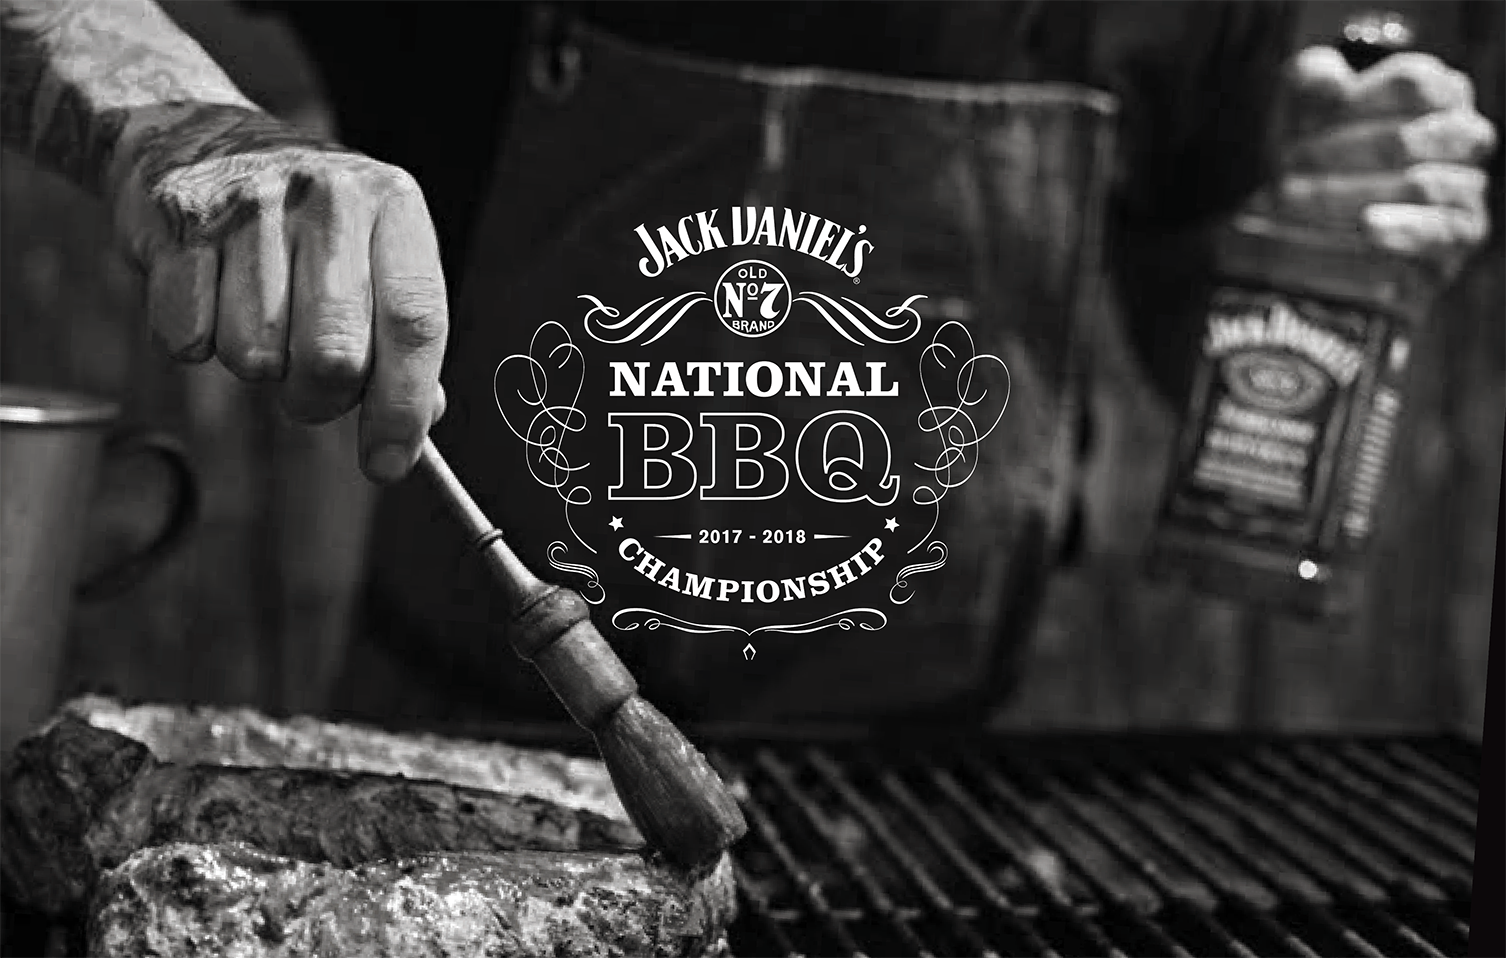 JACK DANIEL'S NATIONAL BBQ CHAMPIONSHIP   Creating a brand new event series